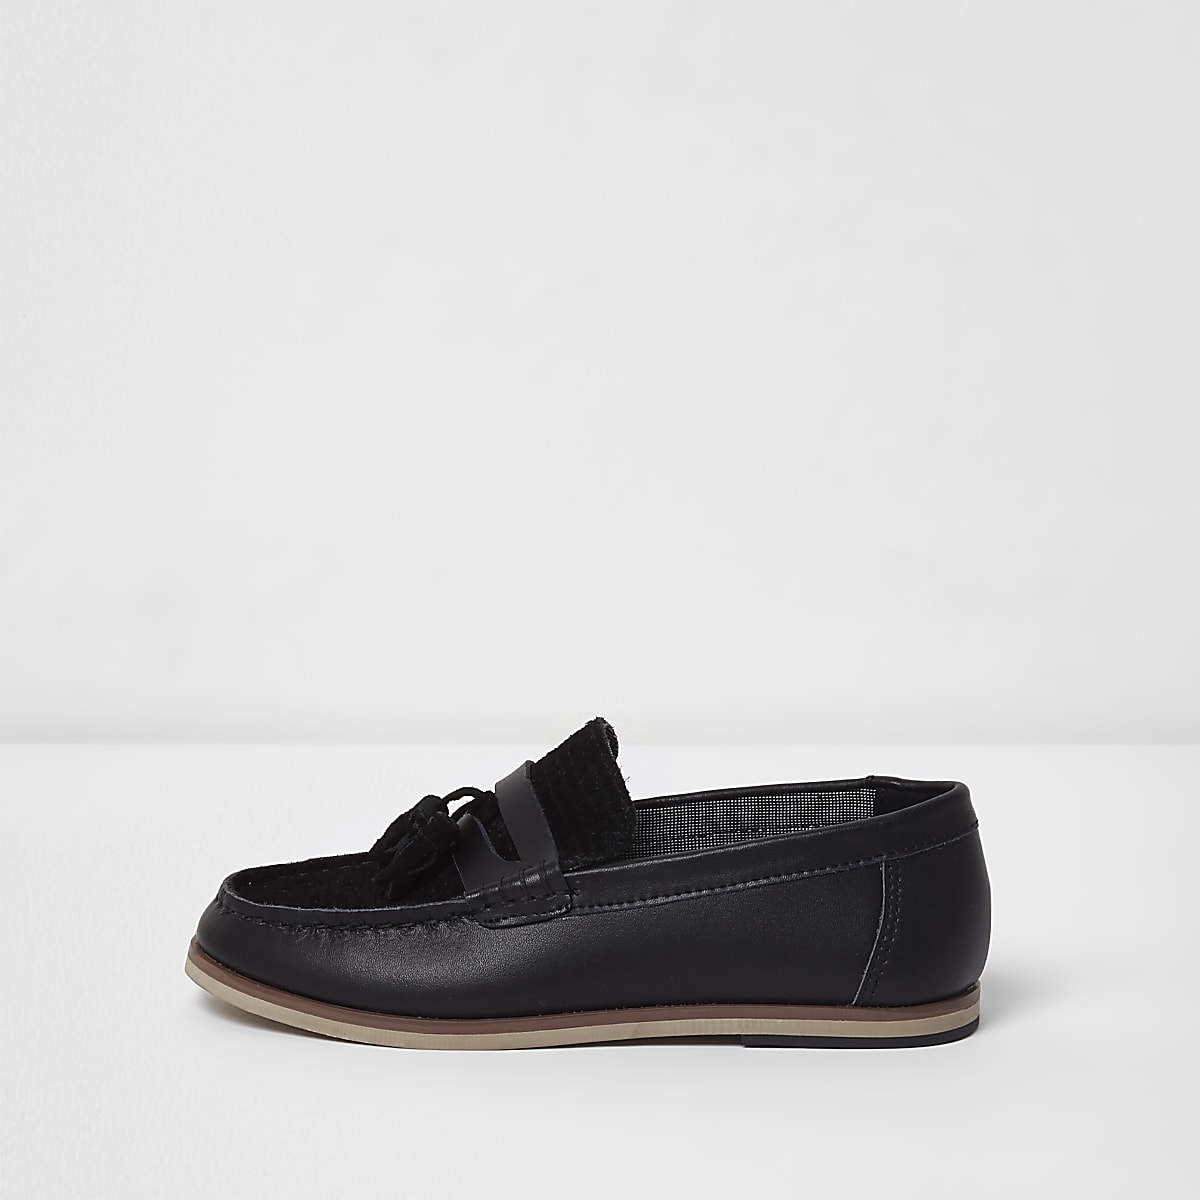 f78e14fa1999 Boys black leather and suede tassel loafers - Shoes - Footwear - boys